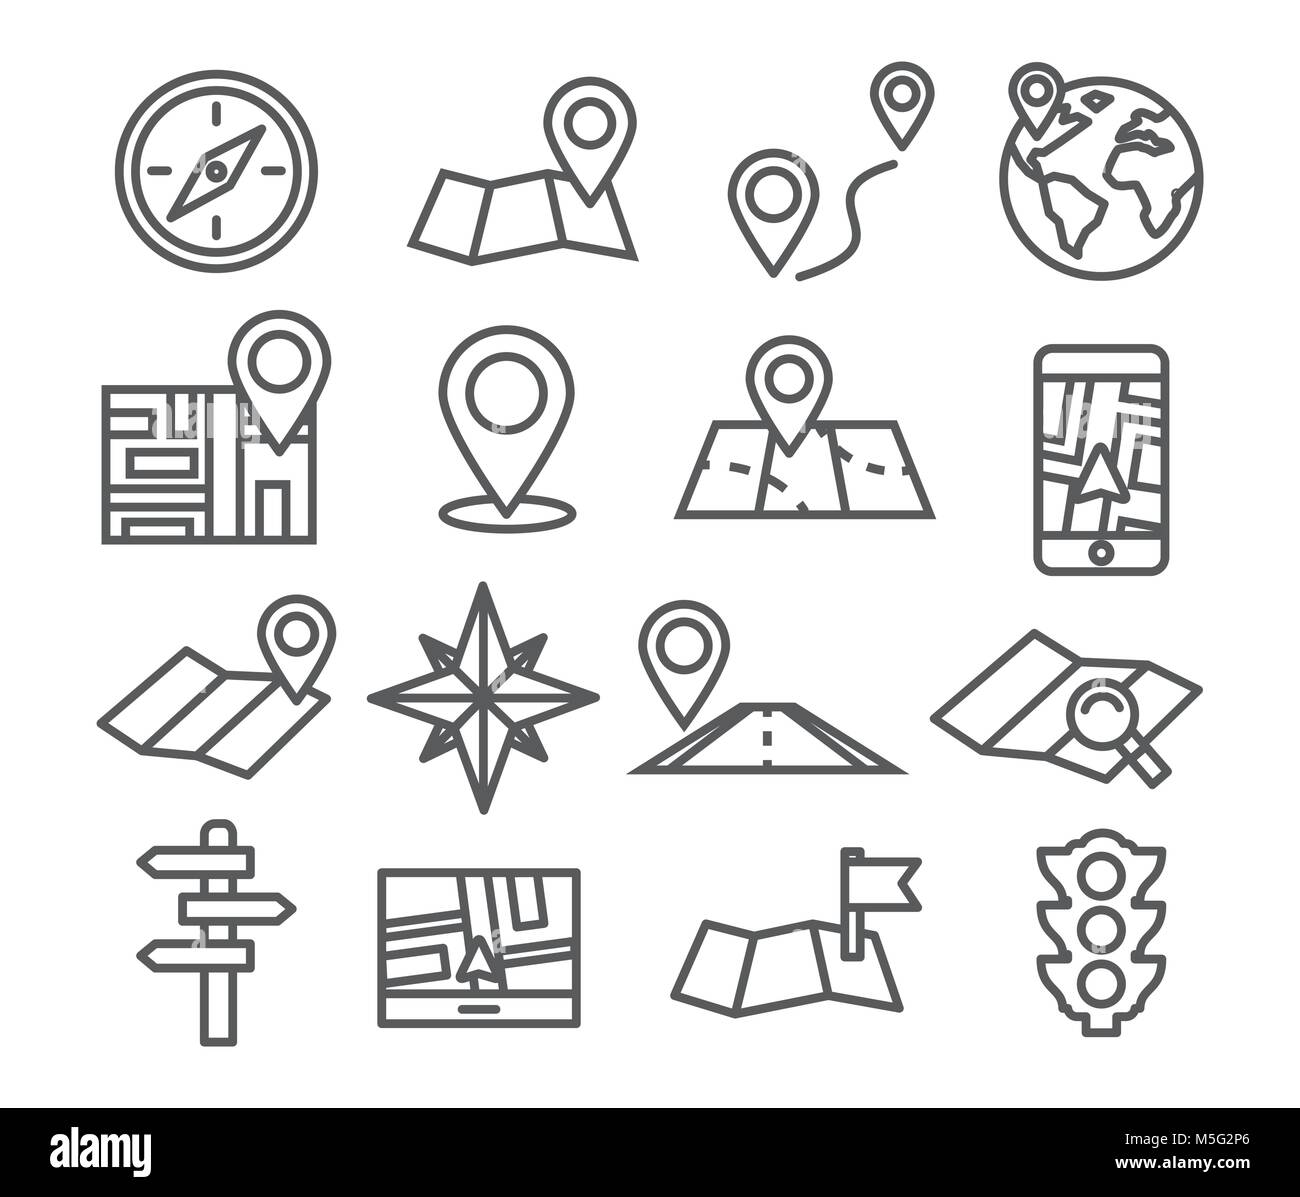 Navigation and Map line icons - Stock Image